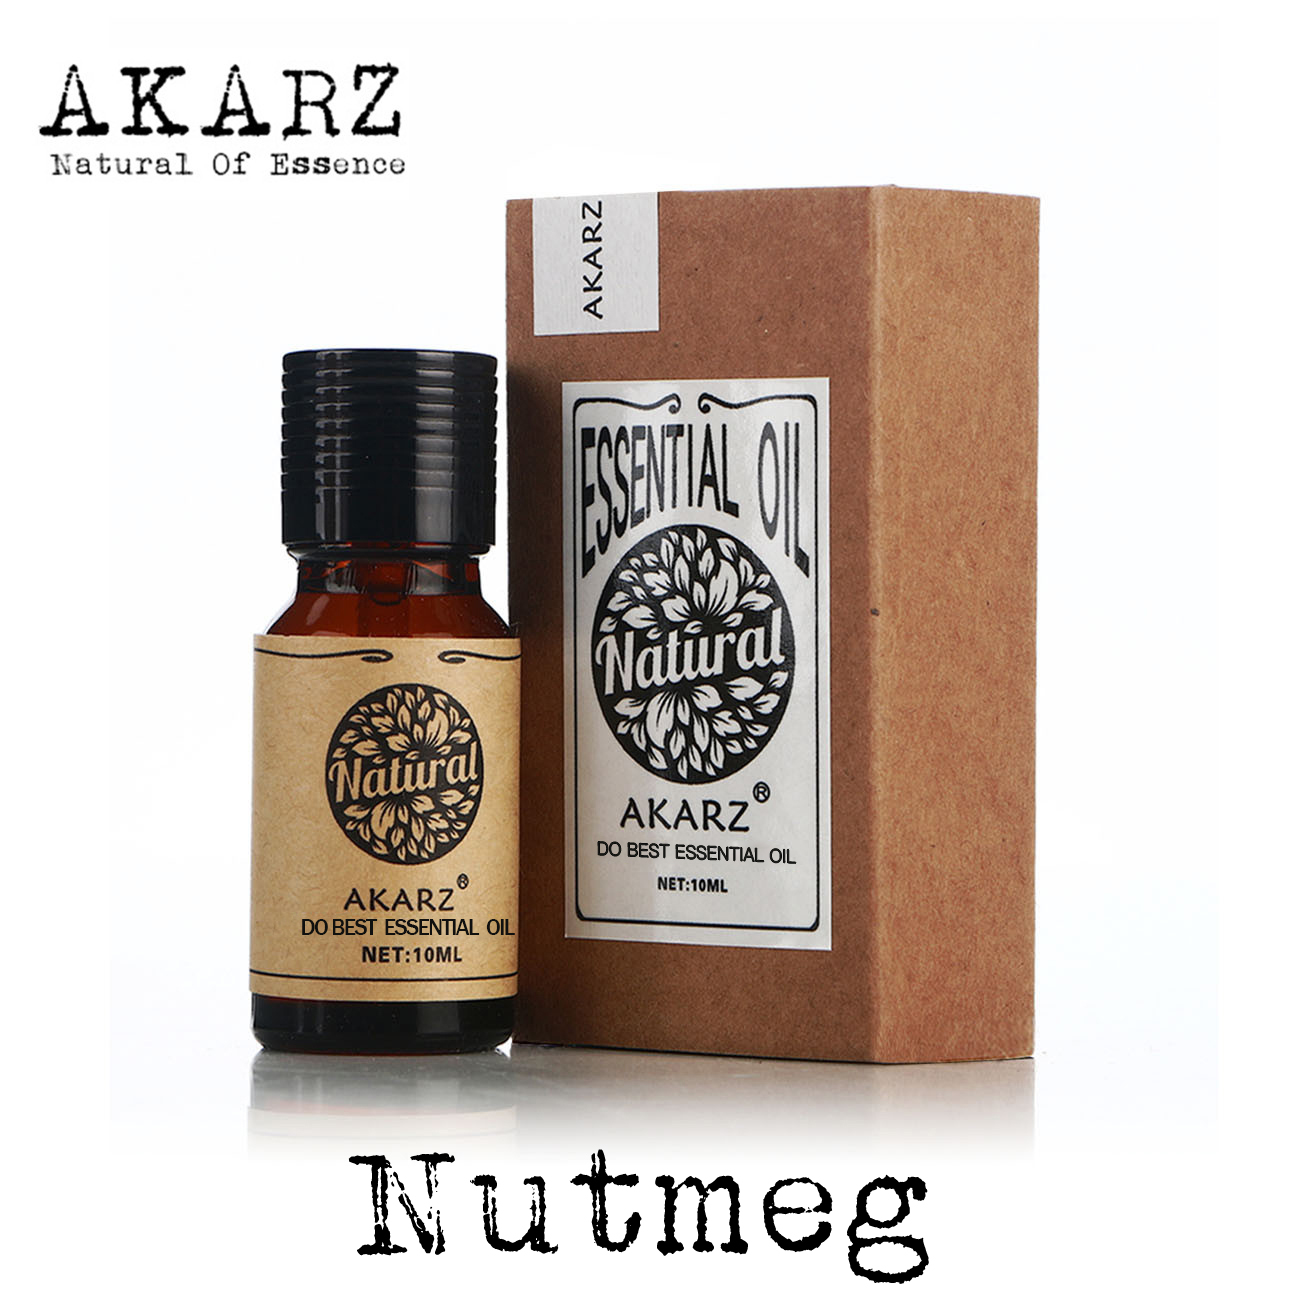 AKARZ Famous brand natural nutmeg essential oil massage Relieve neuralgia stimulate the circulation of blood nutmeg oilAKARZ Famous brand natural nutmeg essential oil massage Relieve neuralgia stimulate the circulation of blood nutmeg oil